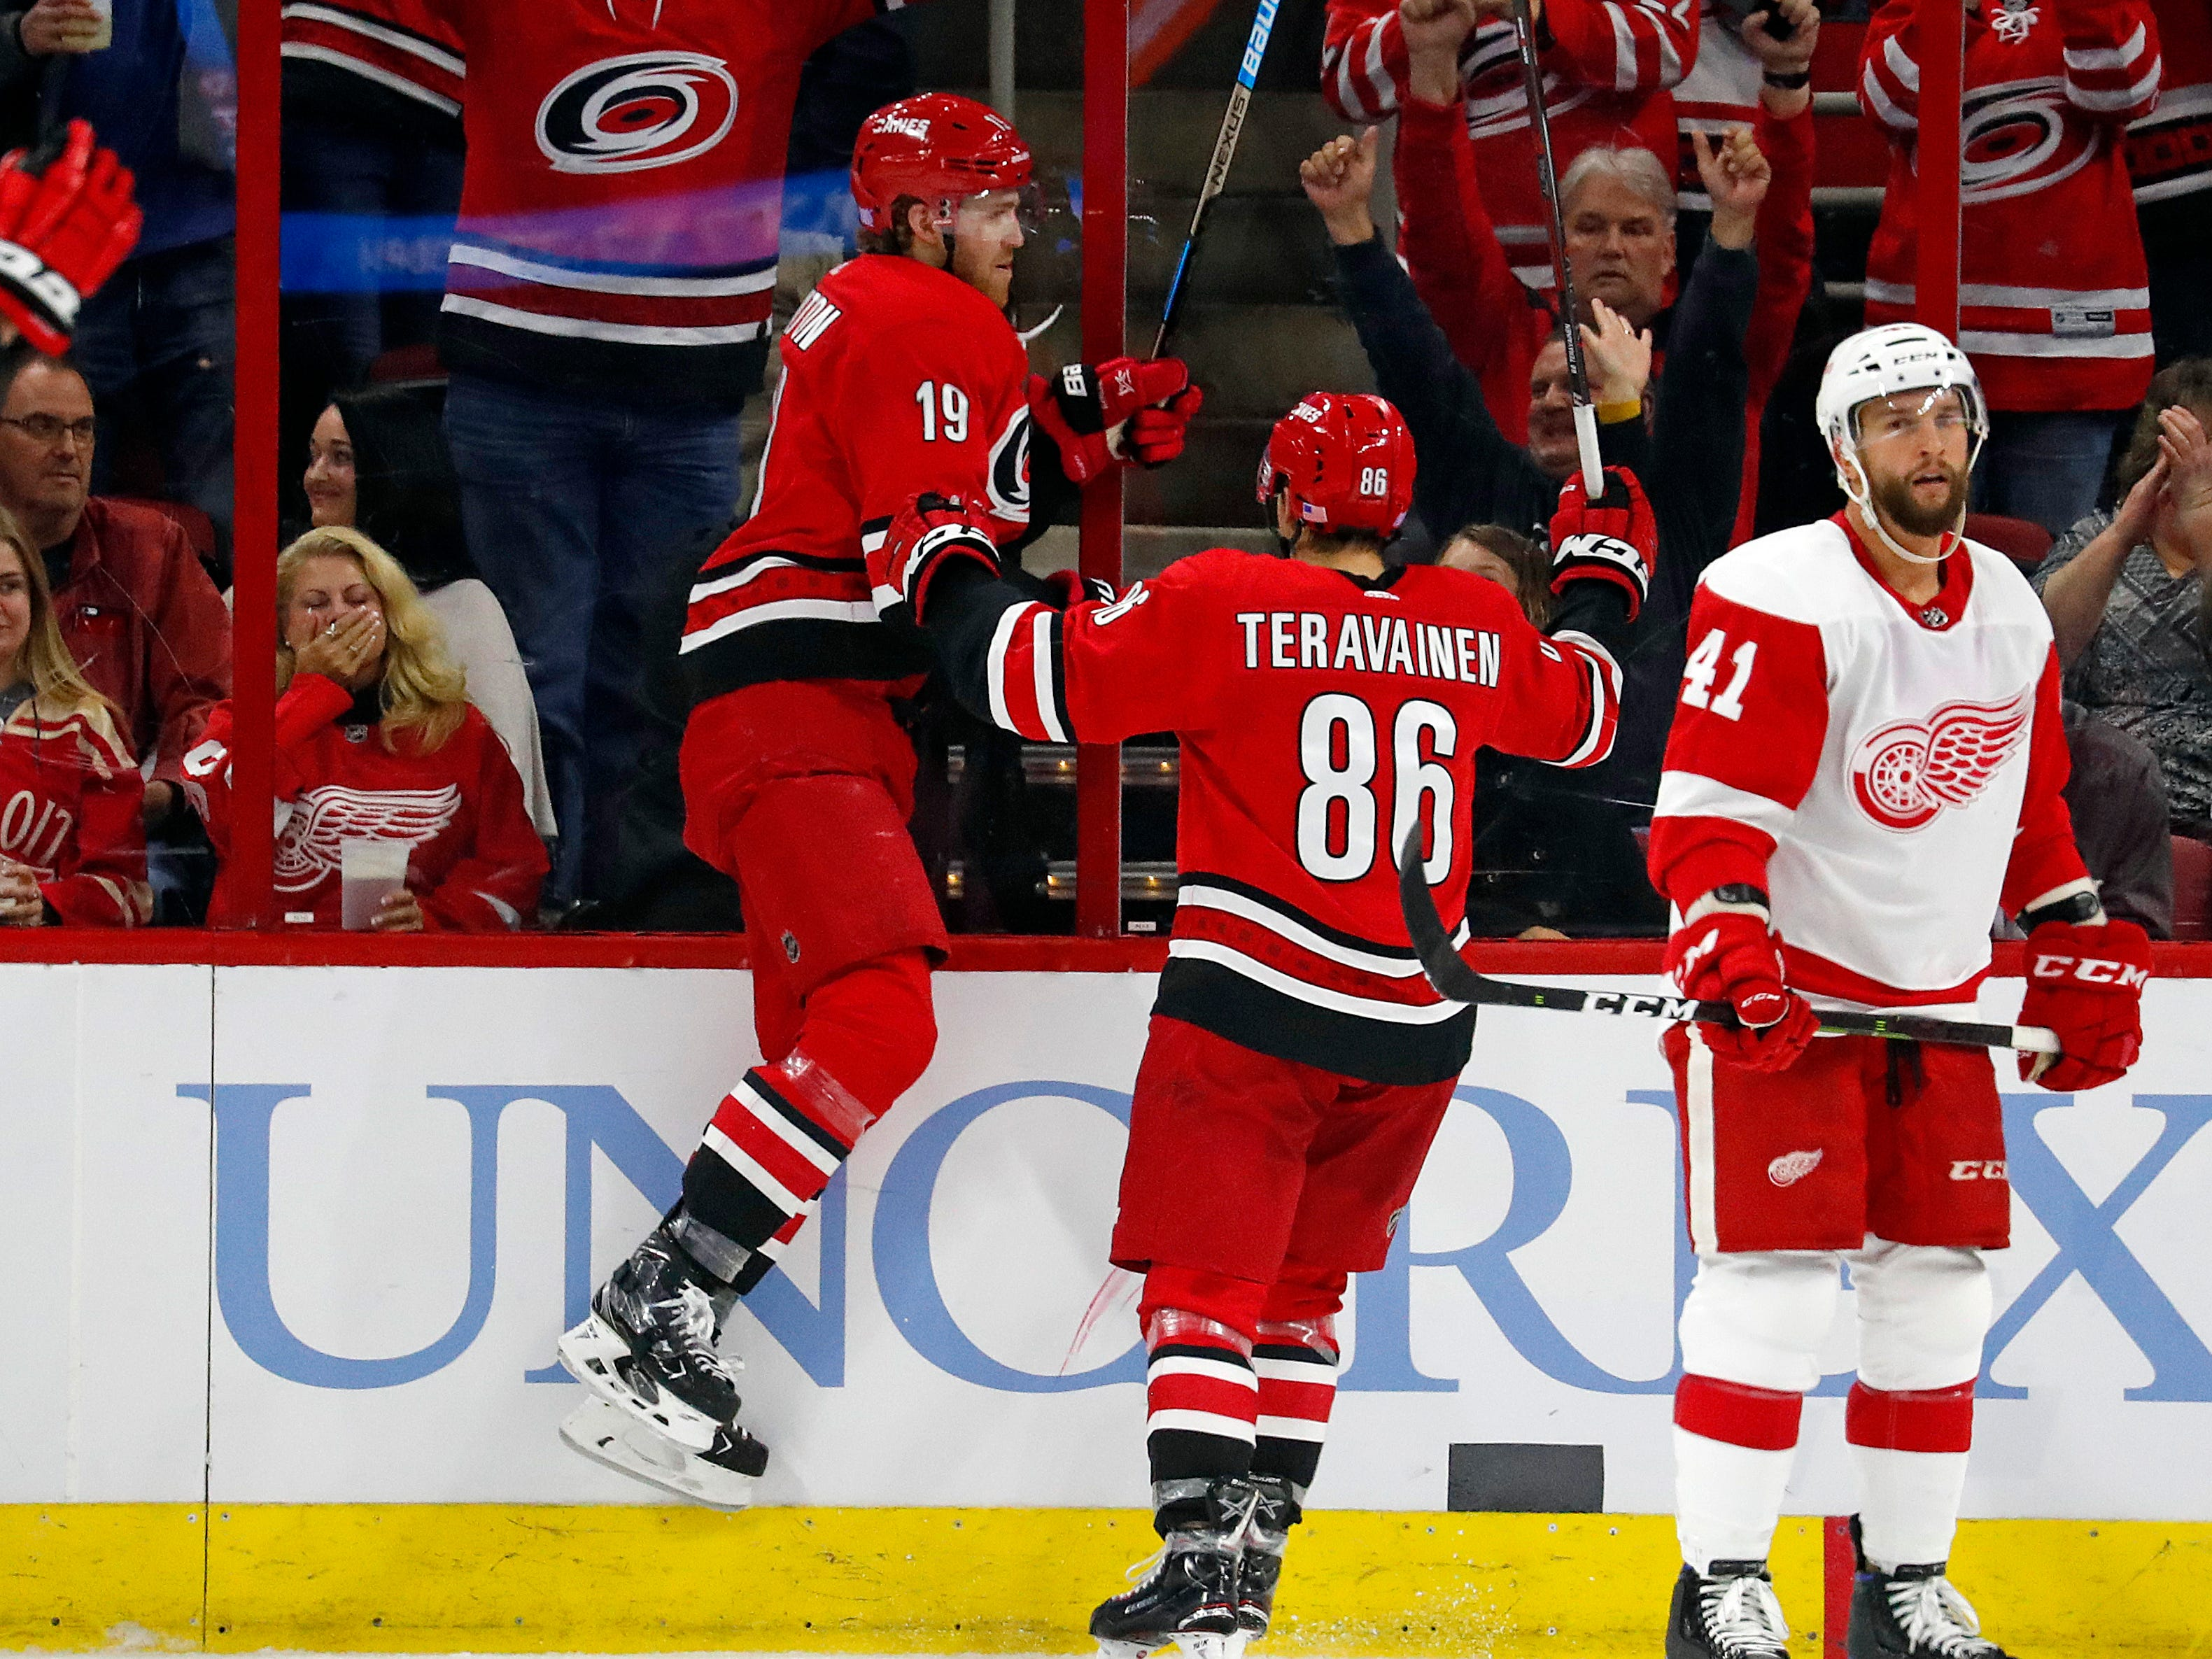 Carolina Hurricanes' Dougie Hamilton (19) and Teuvo Teravainen celebrate Hamilton's goal as Detroit Red Wings' Luke Glendening (41) skates away during the second period.